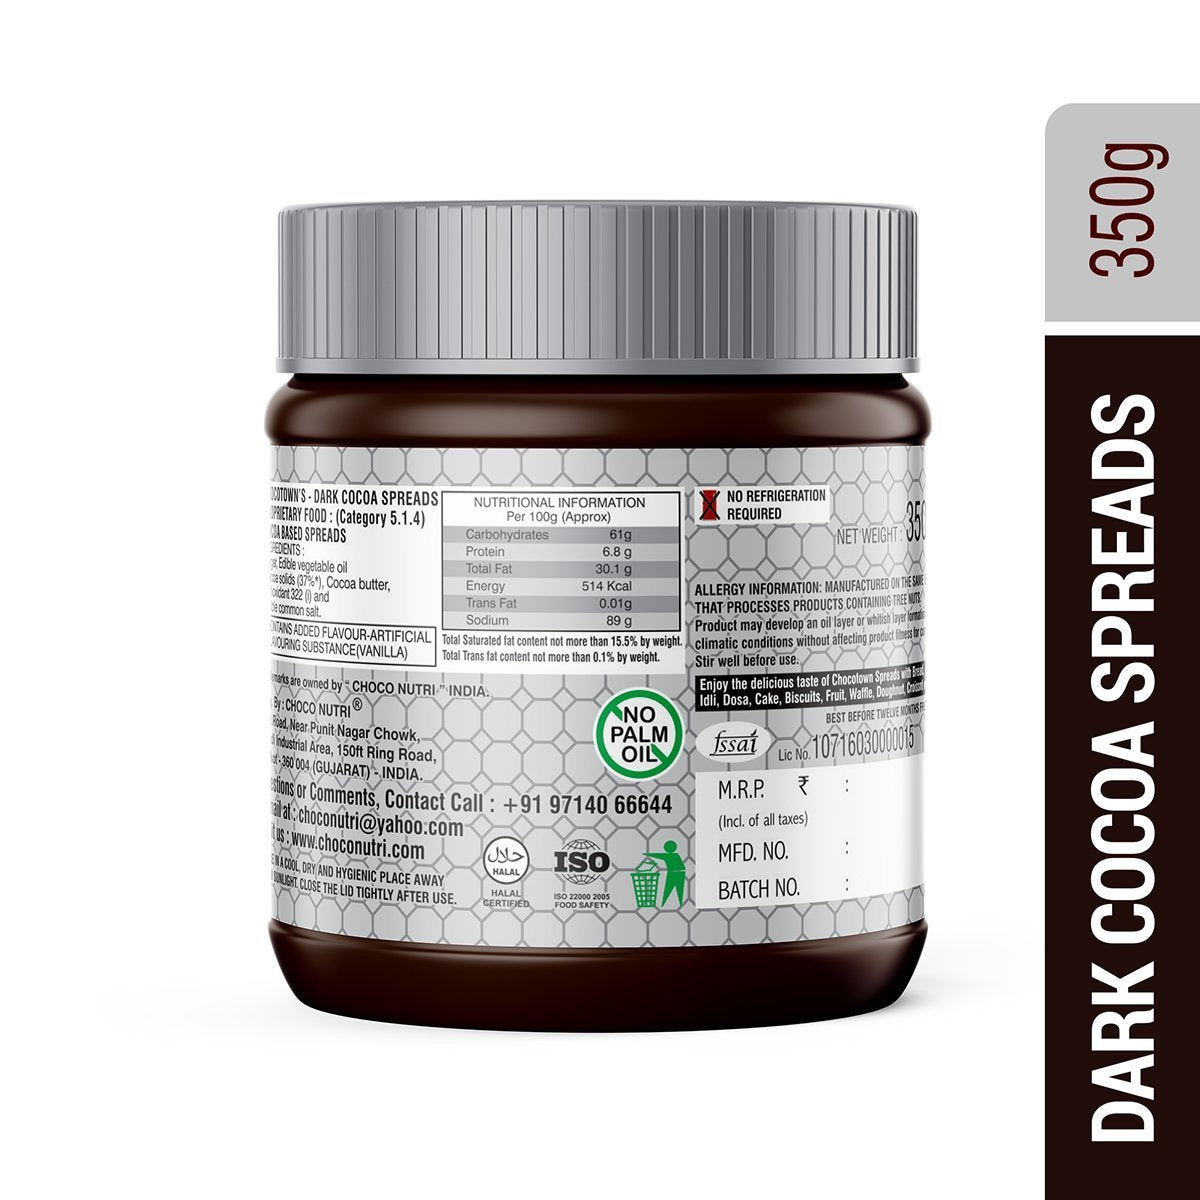 055_Choco Nutri Chocolate Spreads - Premium Dark Chocolate Spread - 350 gm